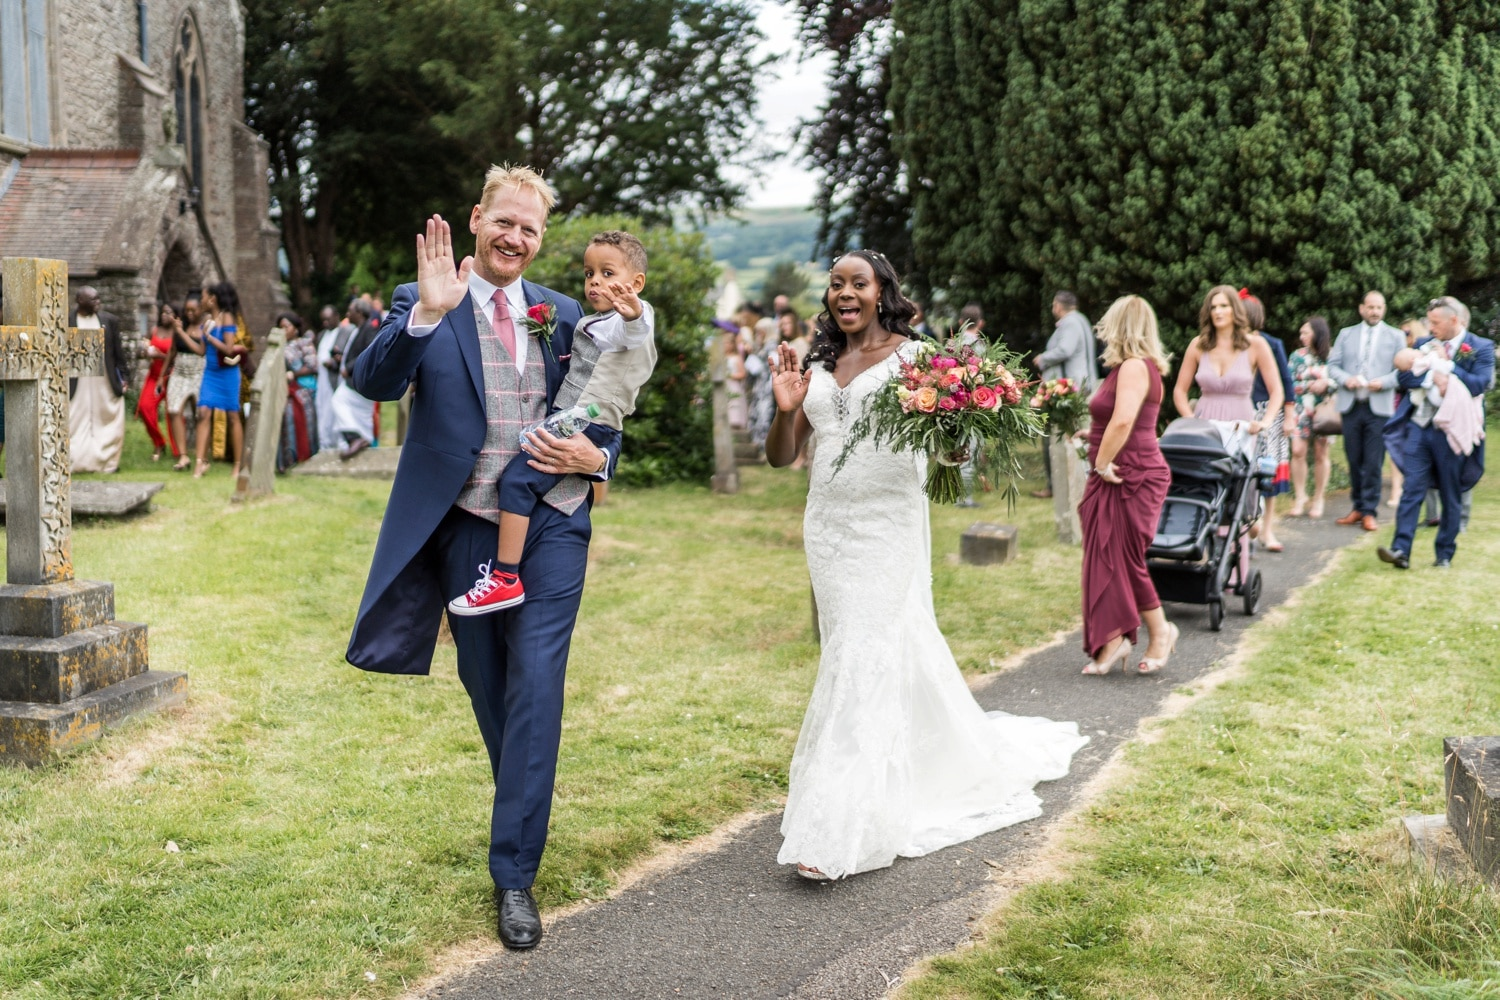 Wedding at St Edmund's Church in Crickhowell, South Wales